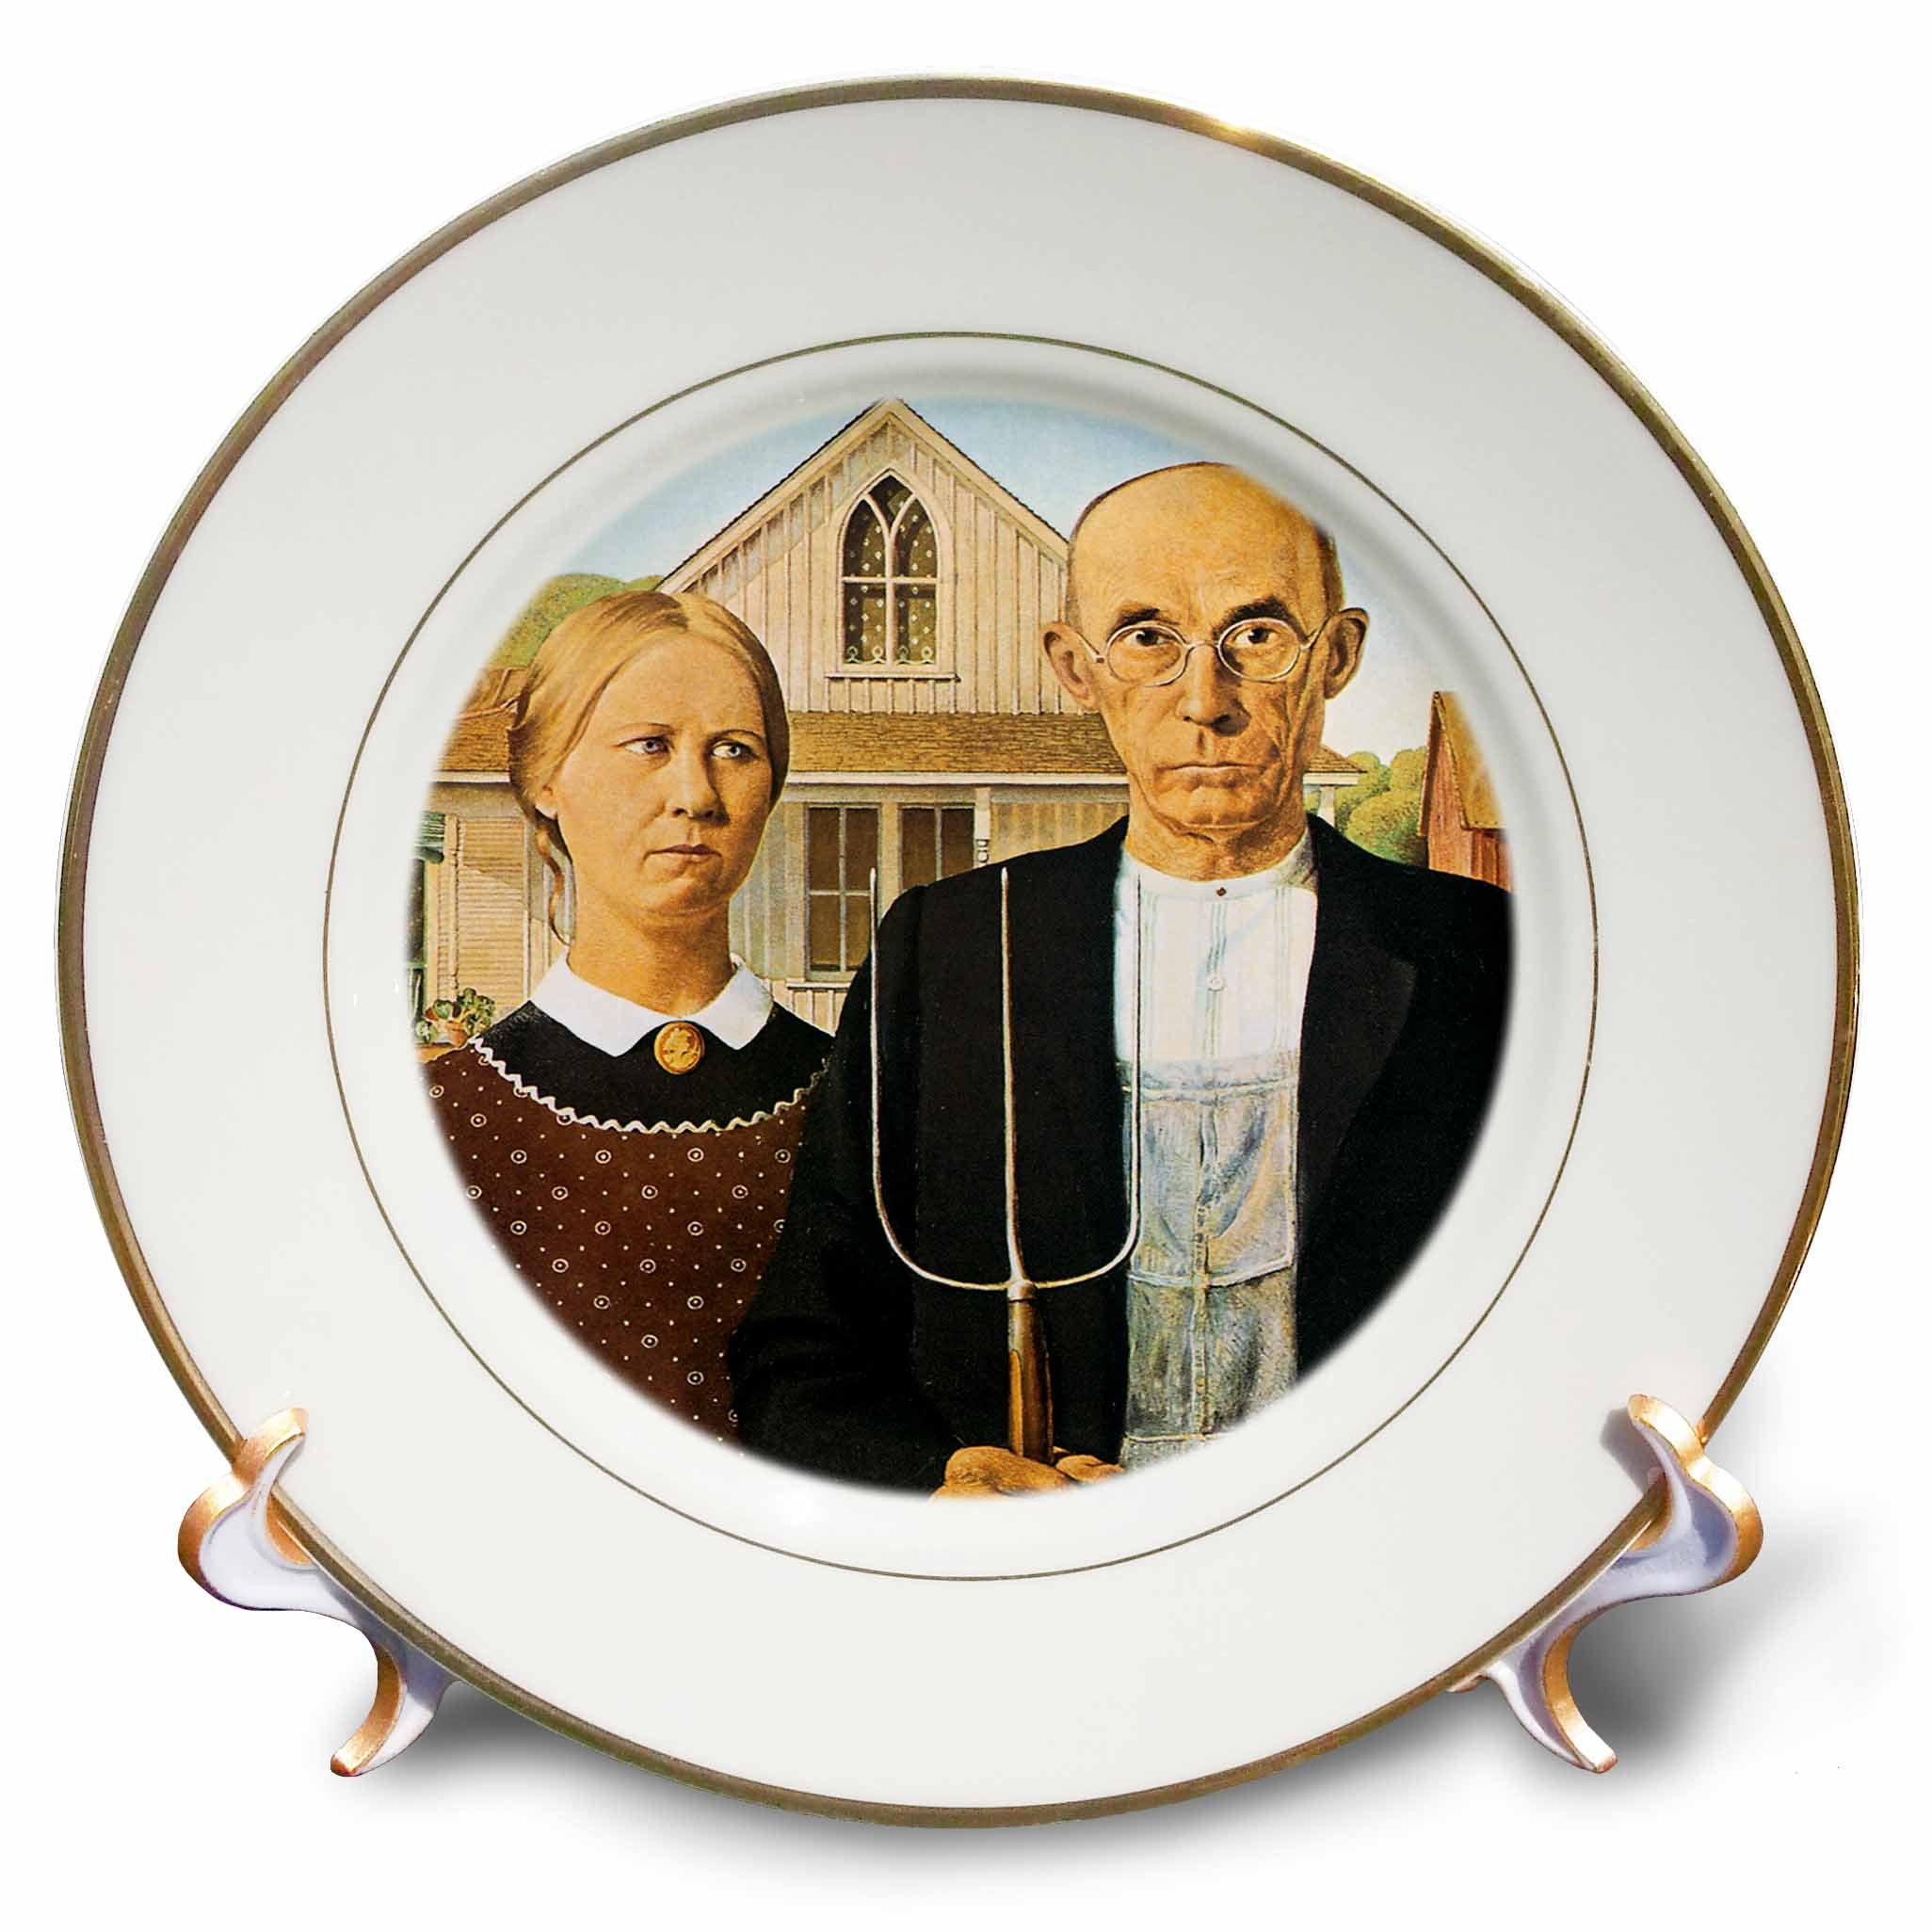 3dRose cp_130186_1 American Gothic by Grant Wood-Porcelain Plate, 8-Inch